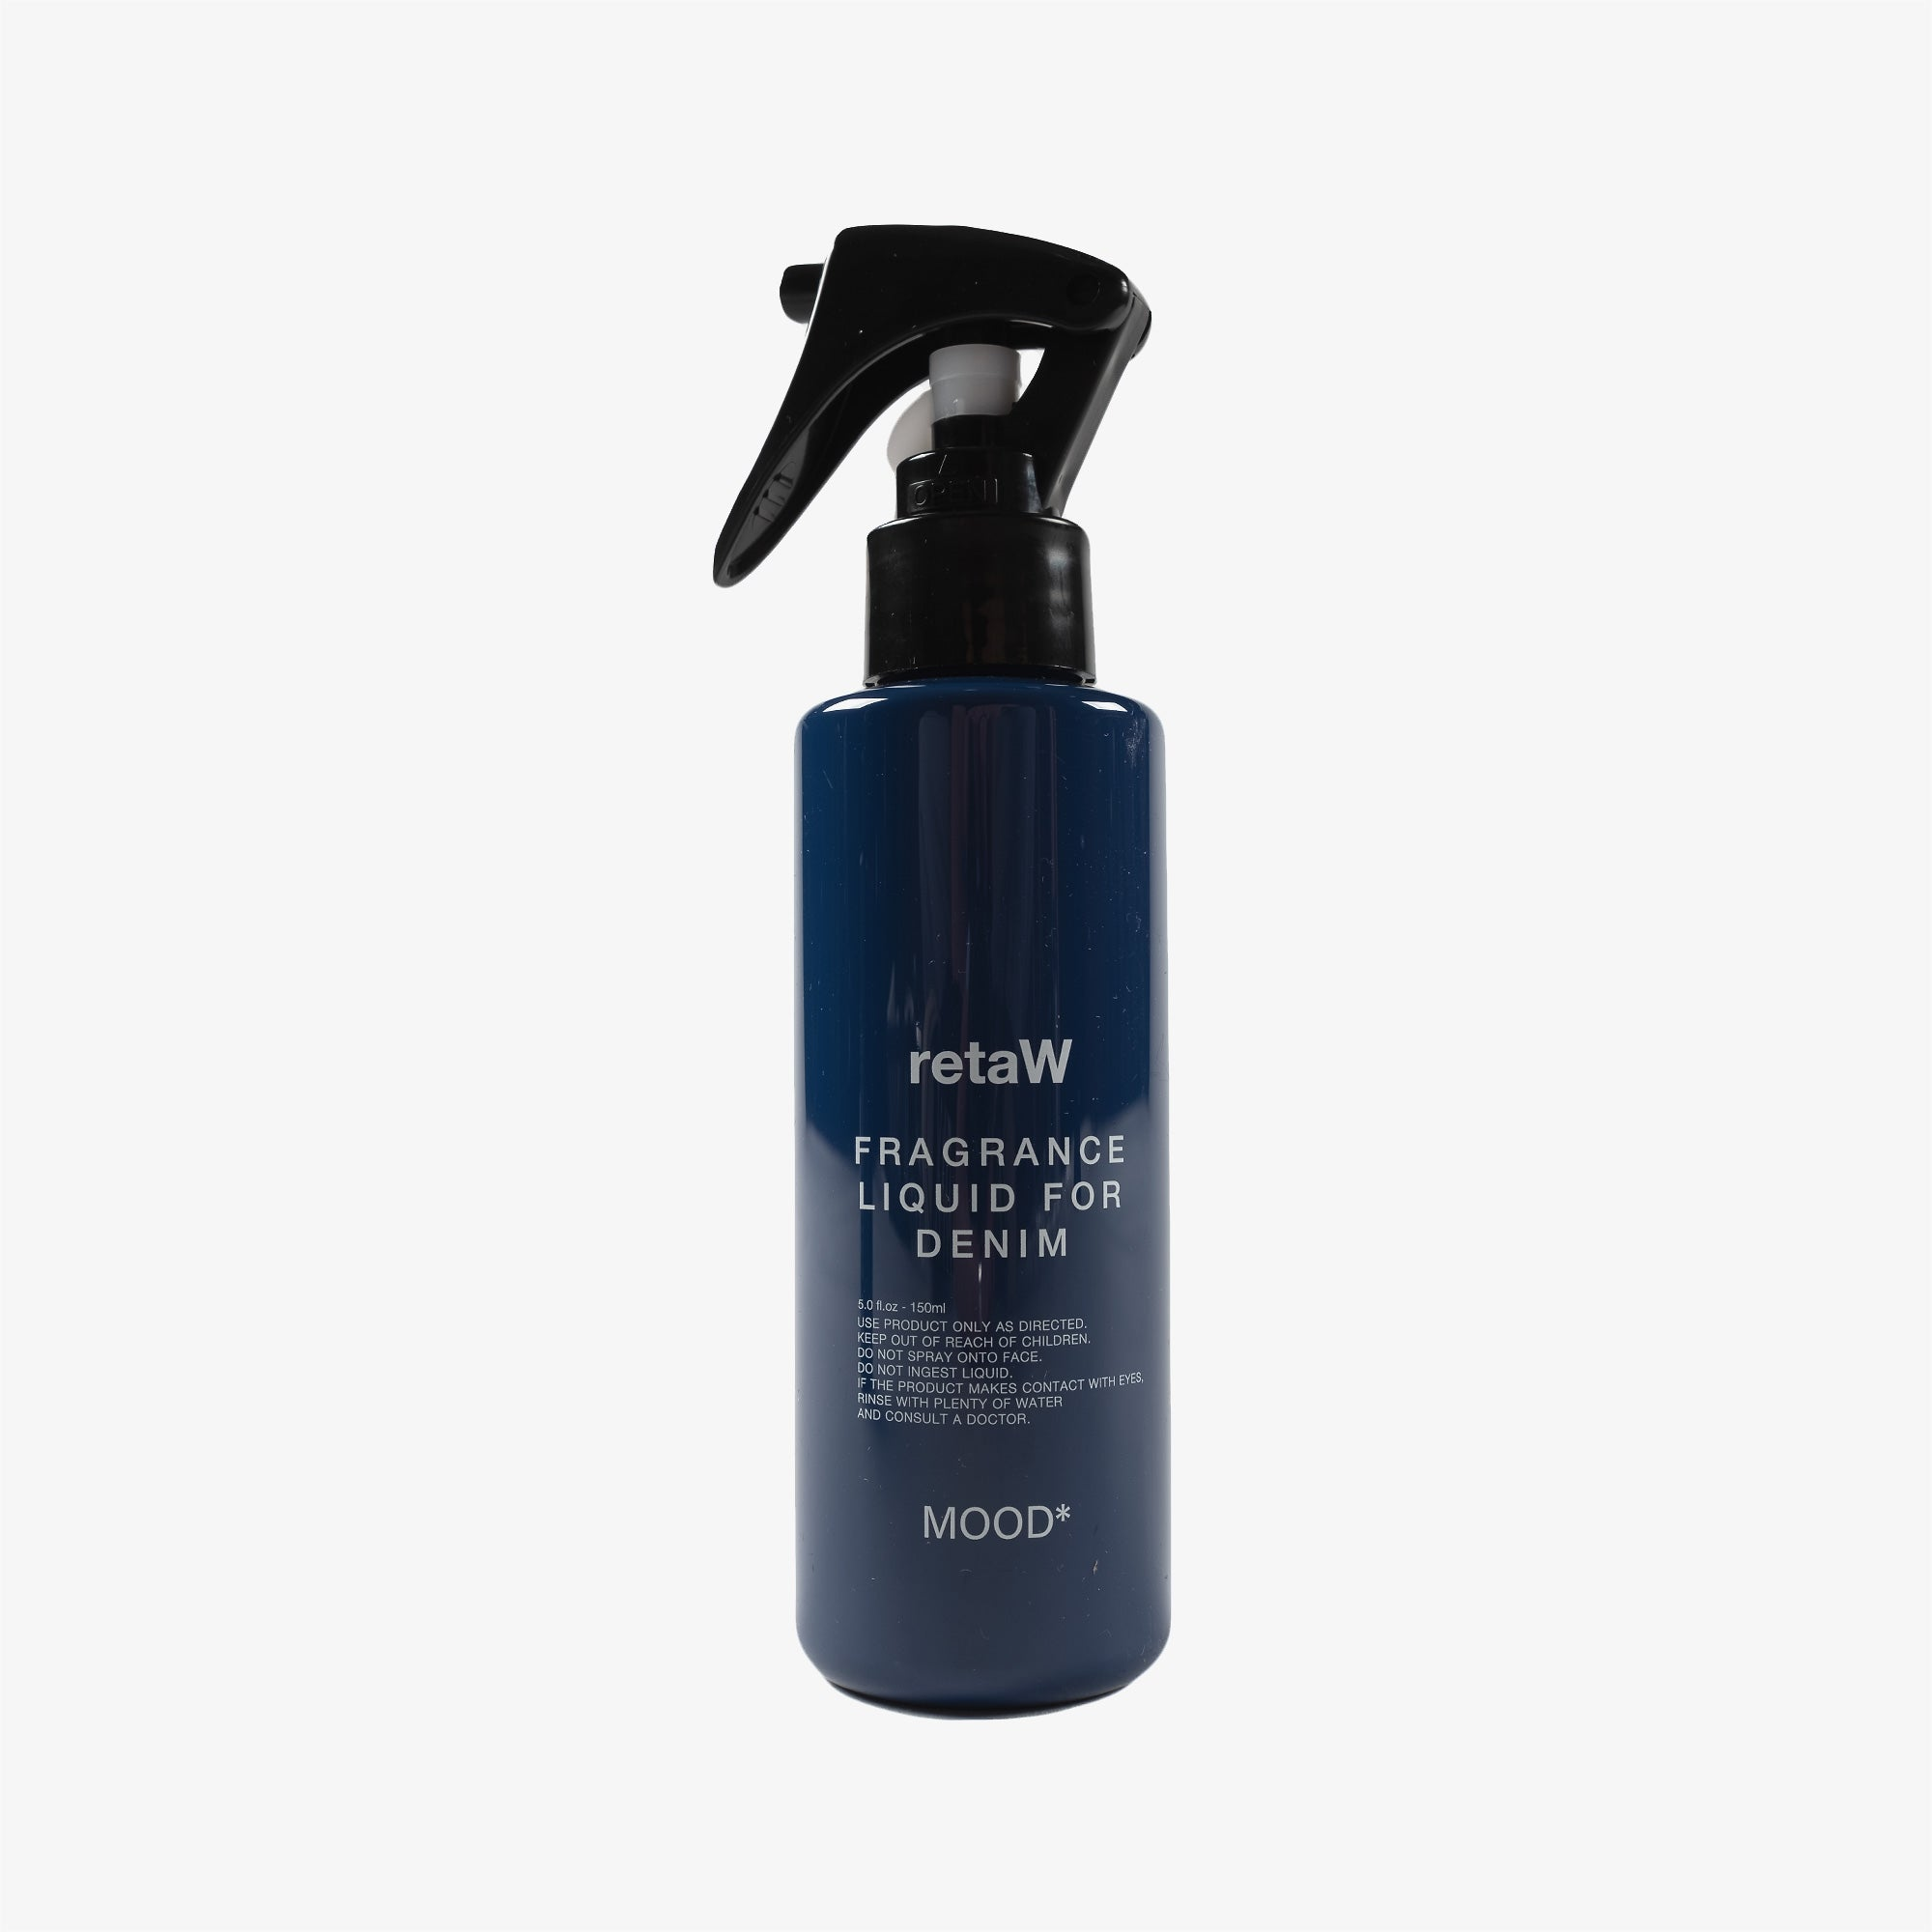 retaW Fragrance Liquid for Denim - Mood 1